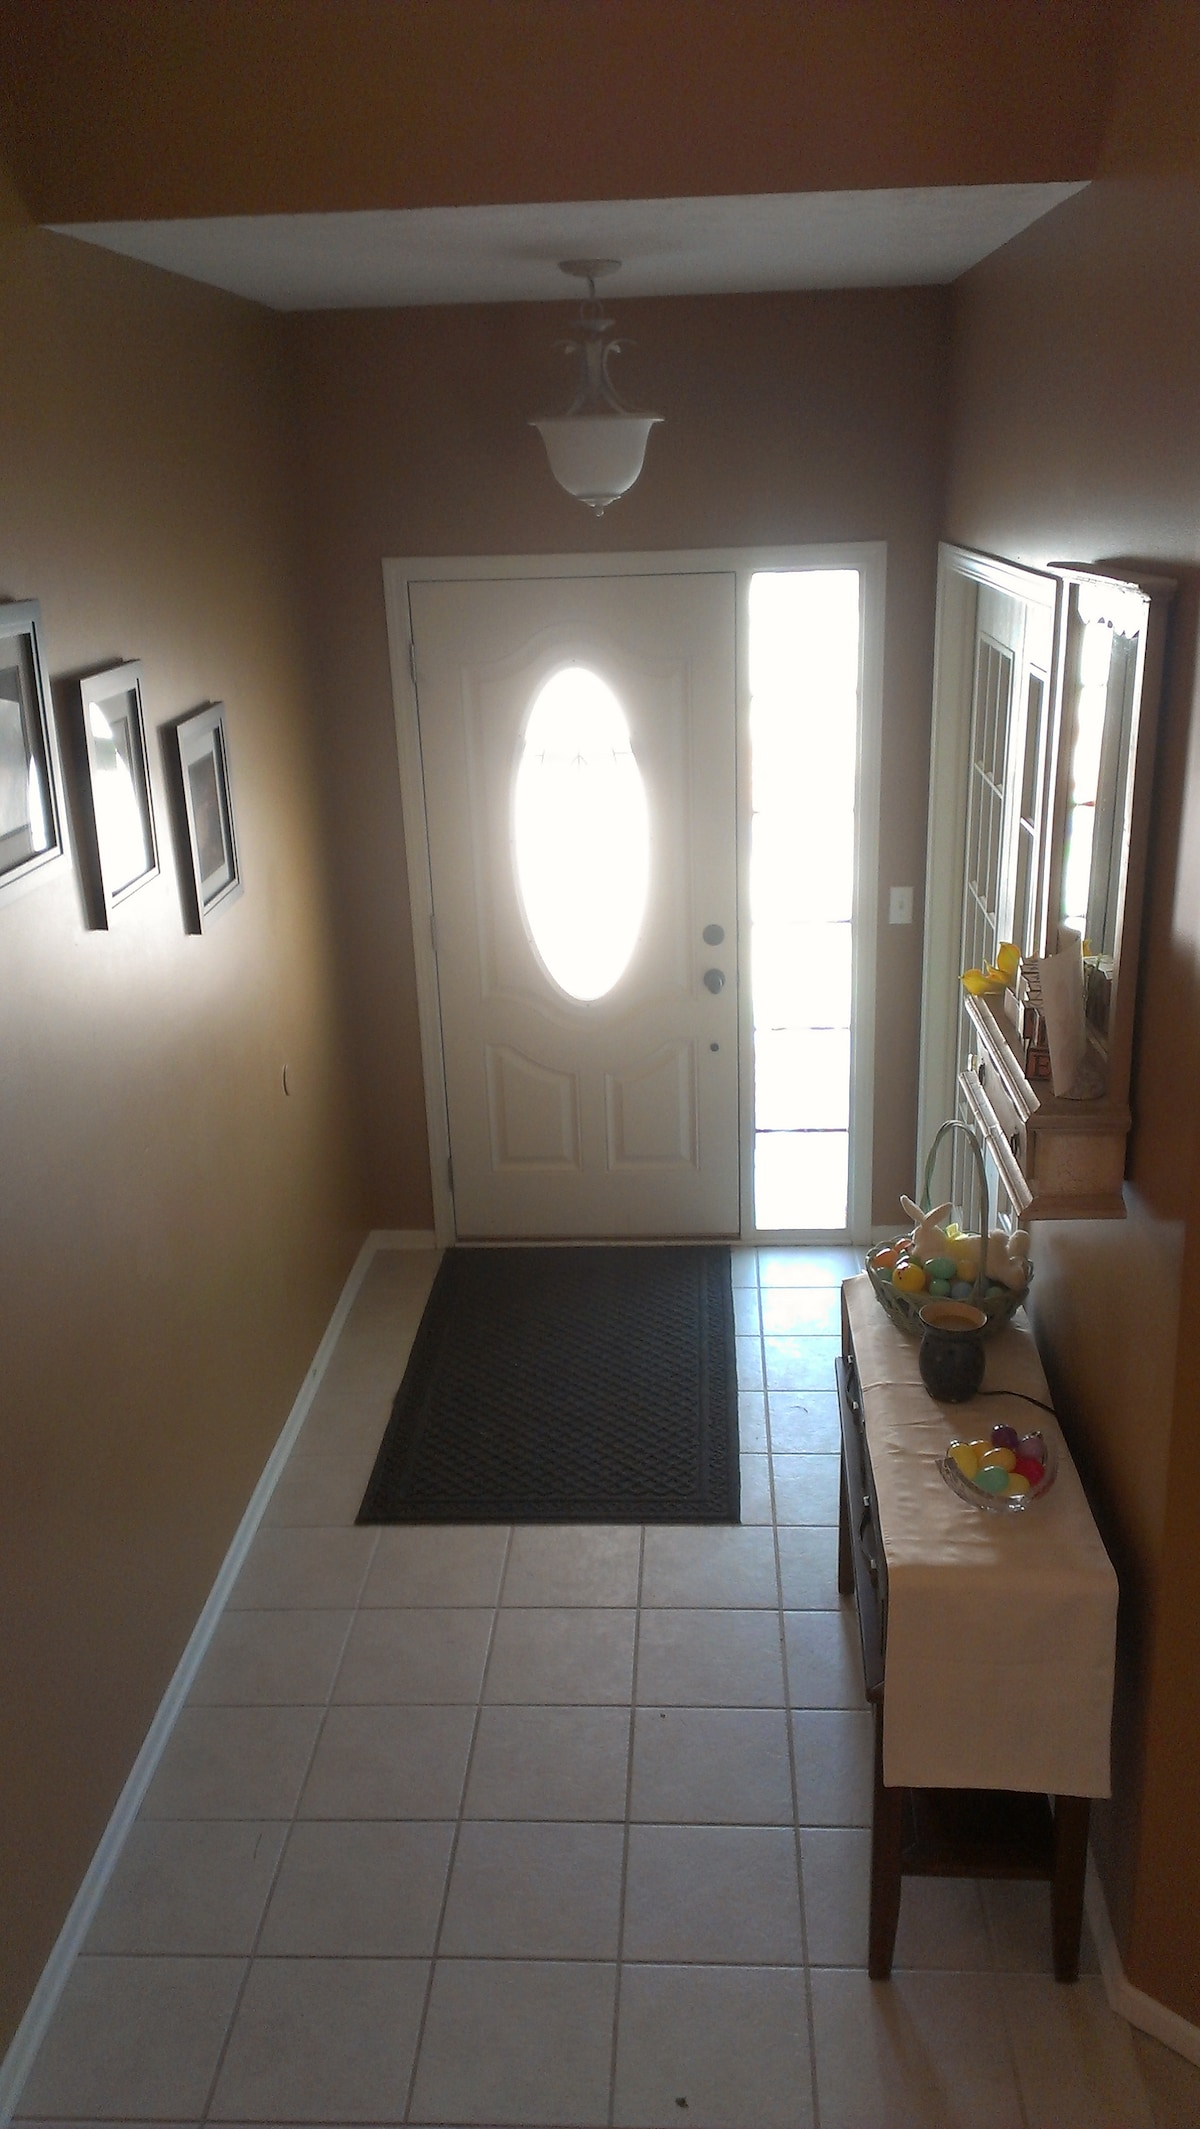 Well-lit entryway, ready for your arrival.